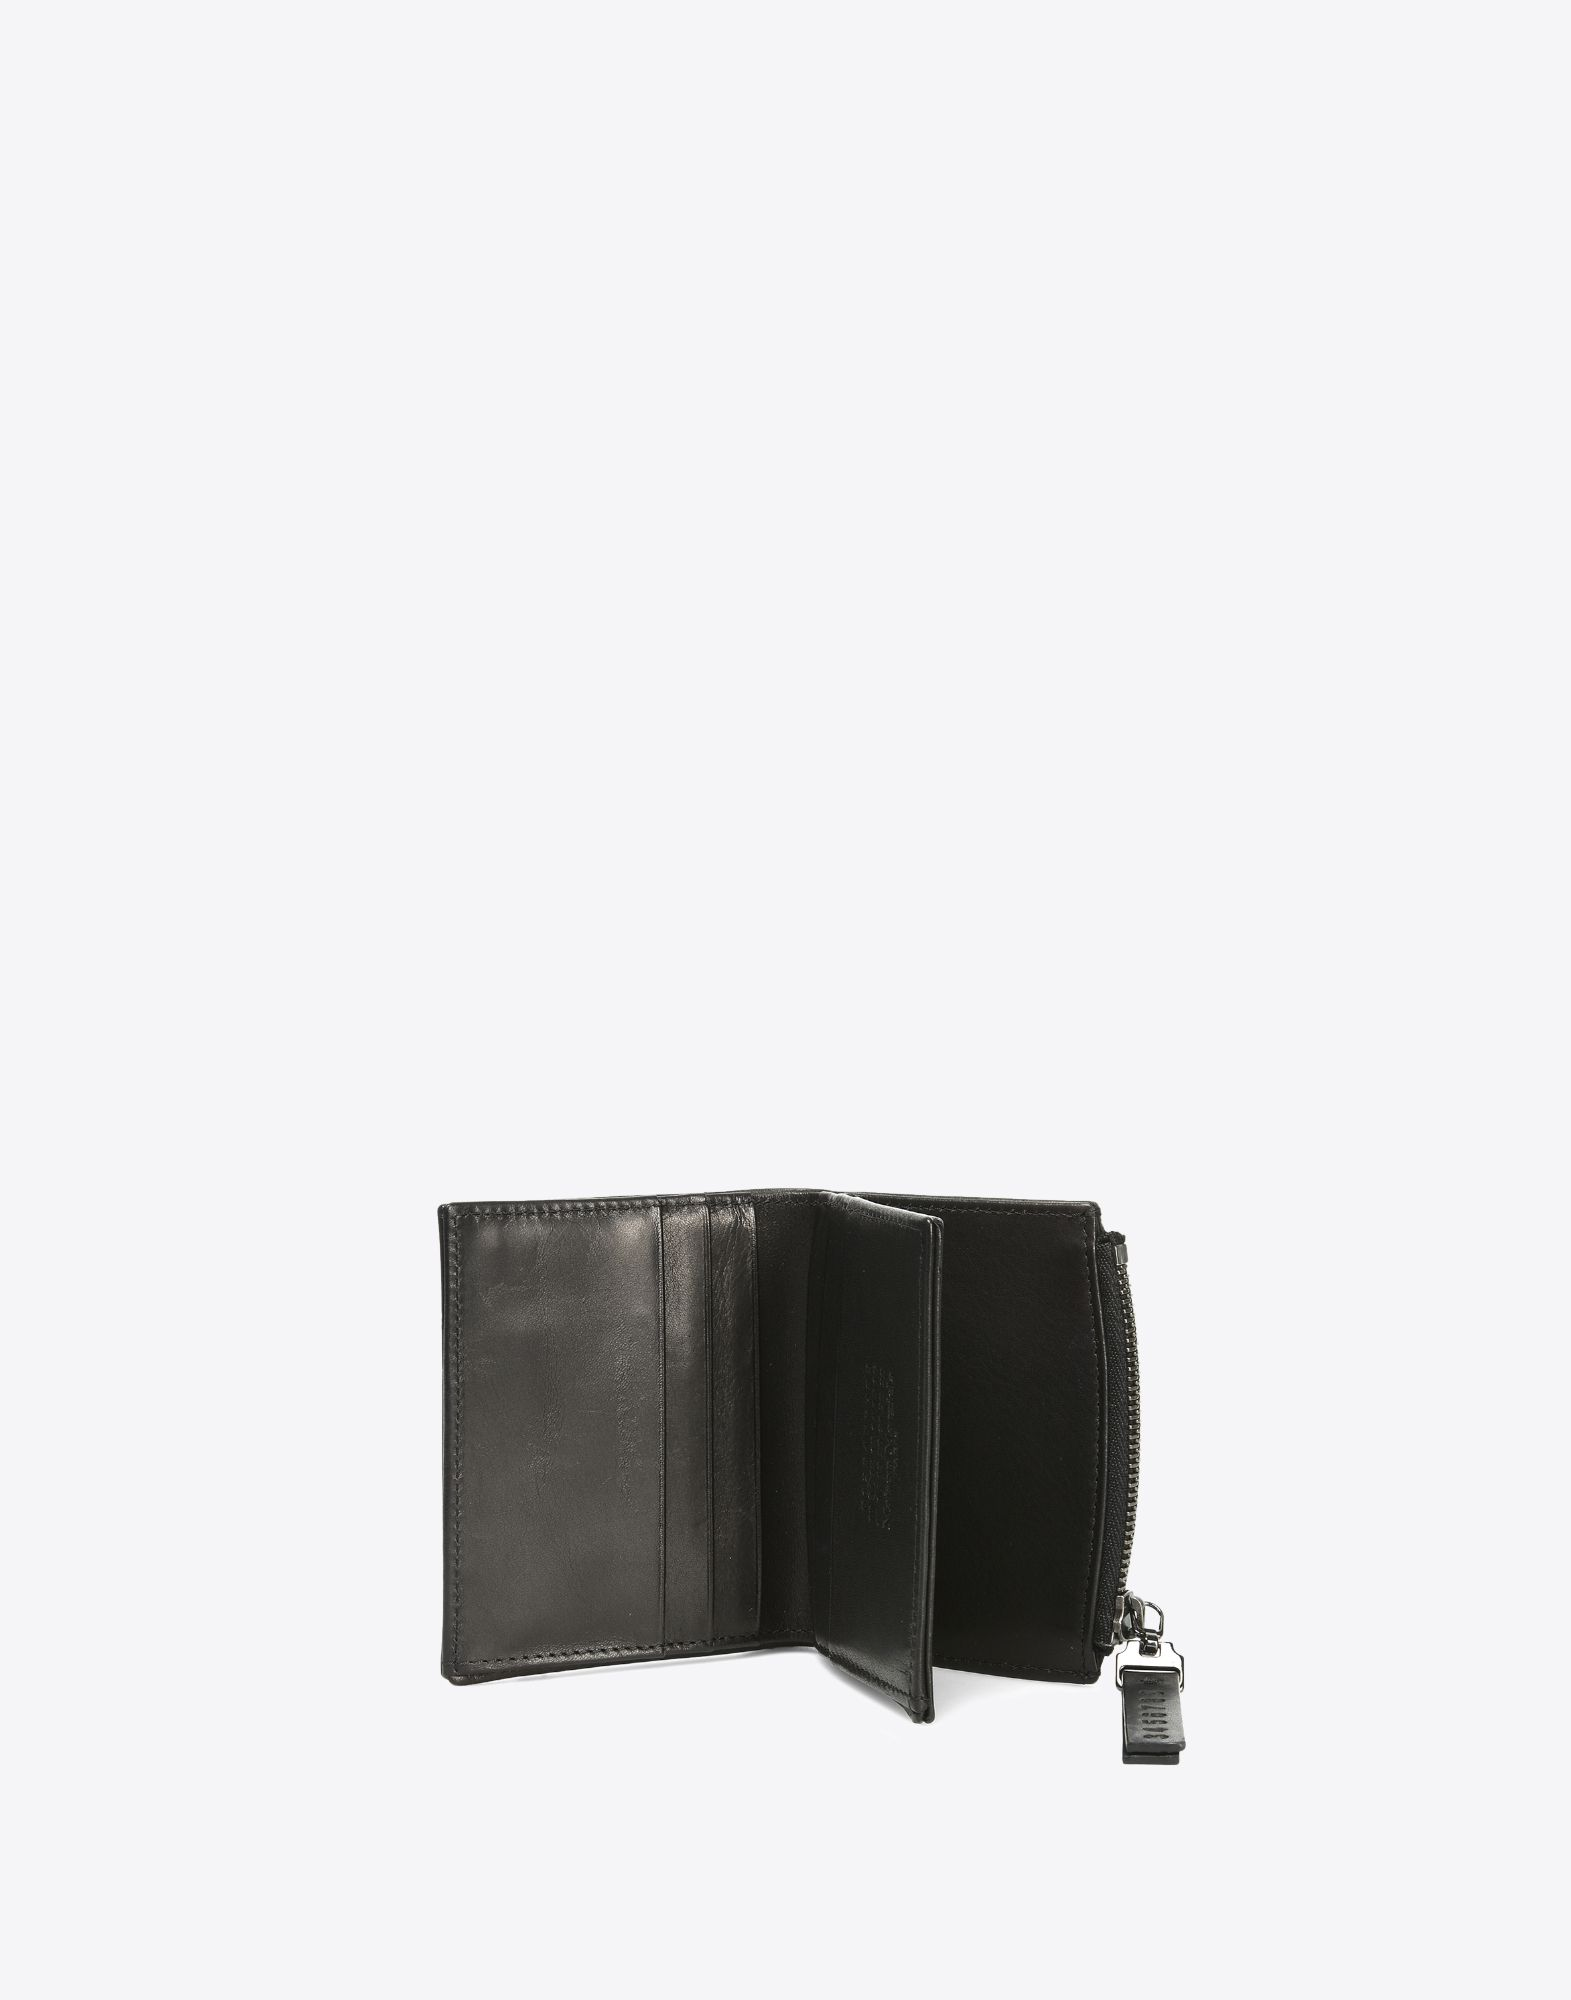 MAISON MARGIELA Calfskin wallet with coin pouch Wallets Man b